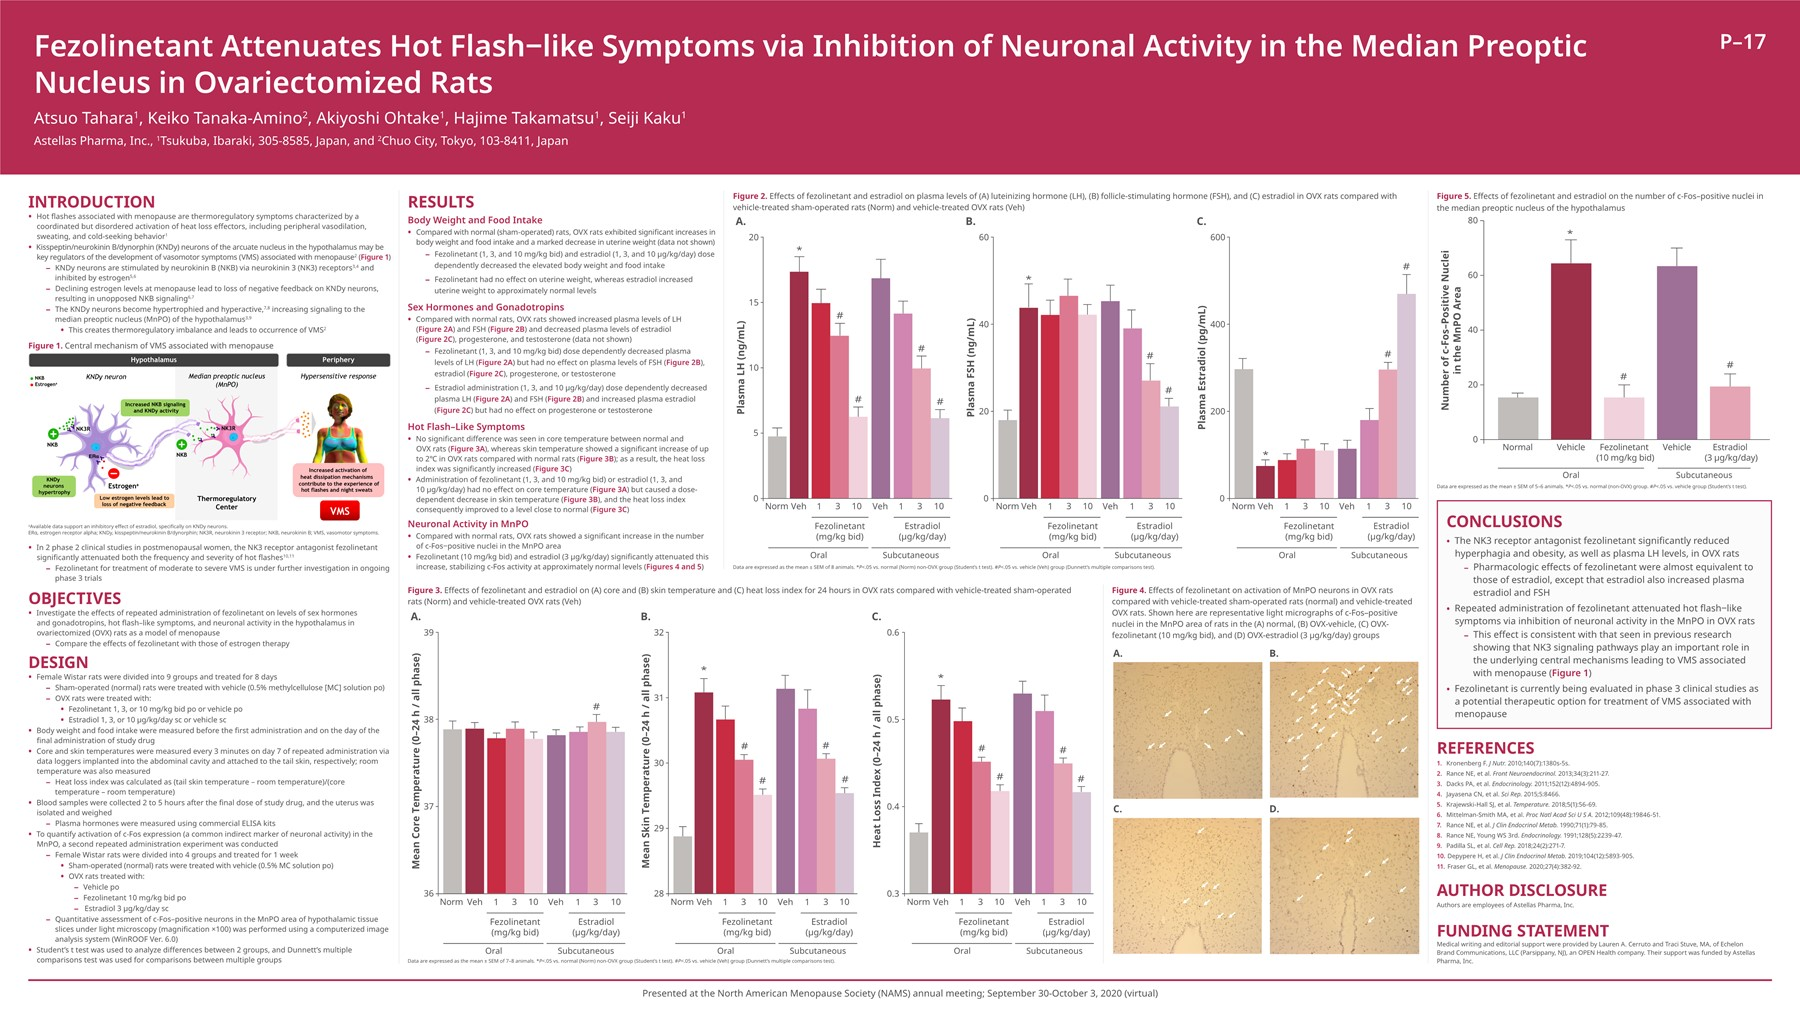 Fezolinetant Attenuates Hot Flash-like Symptoms via Inhibition of Neuronal Activity in the Median Preoptic Nucleus in Ovariectomized Rats